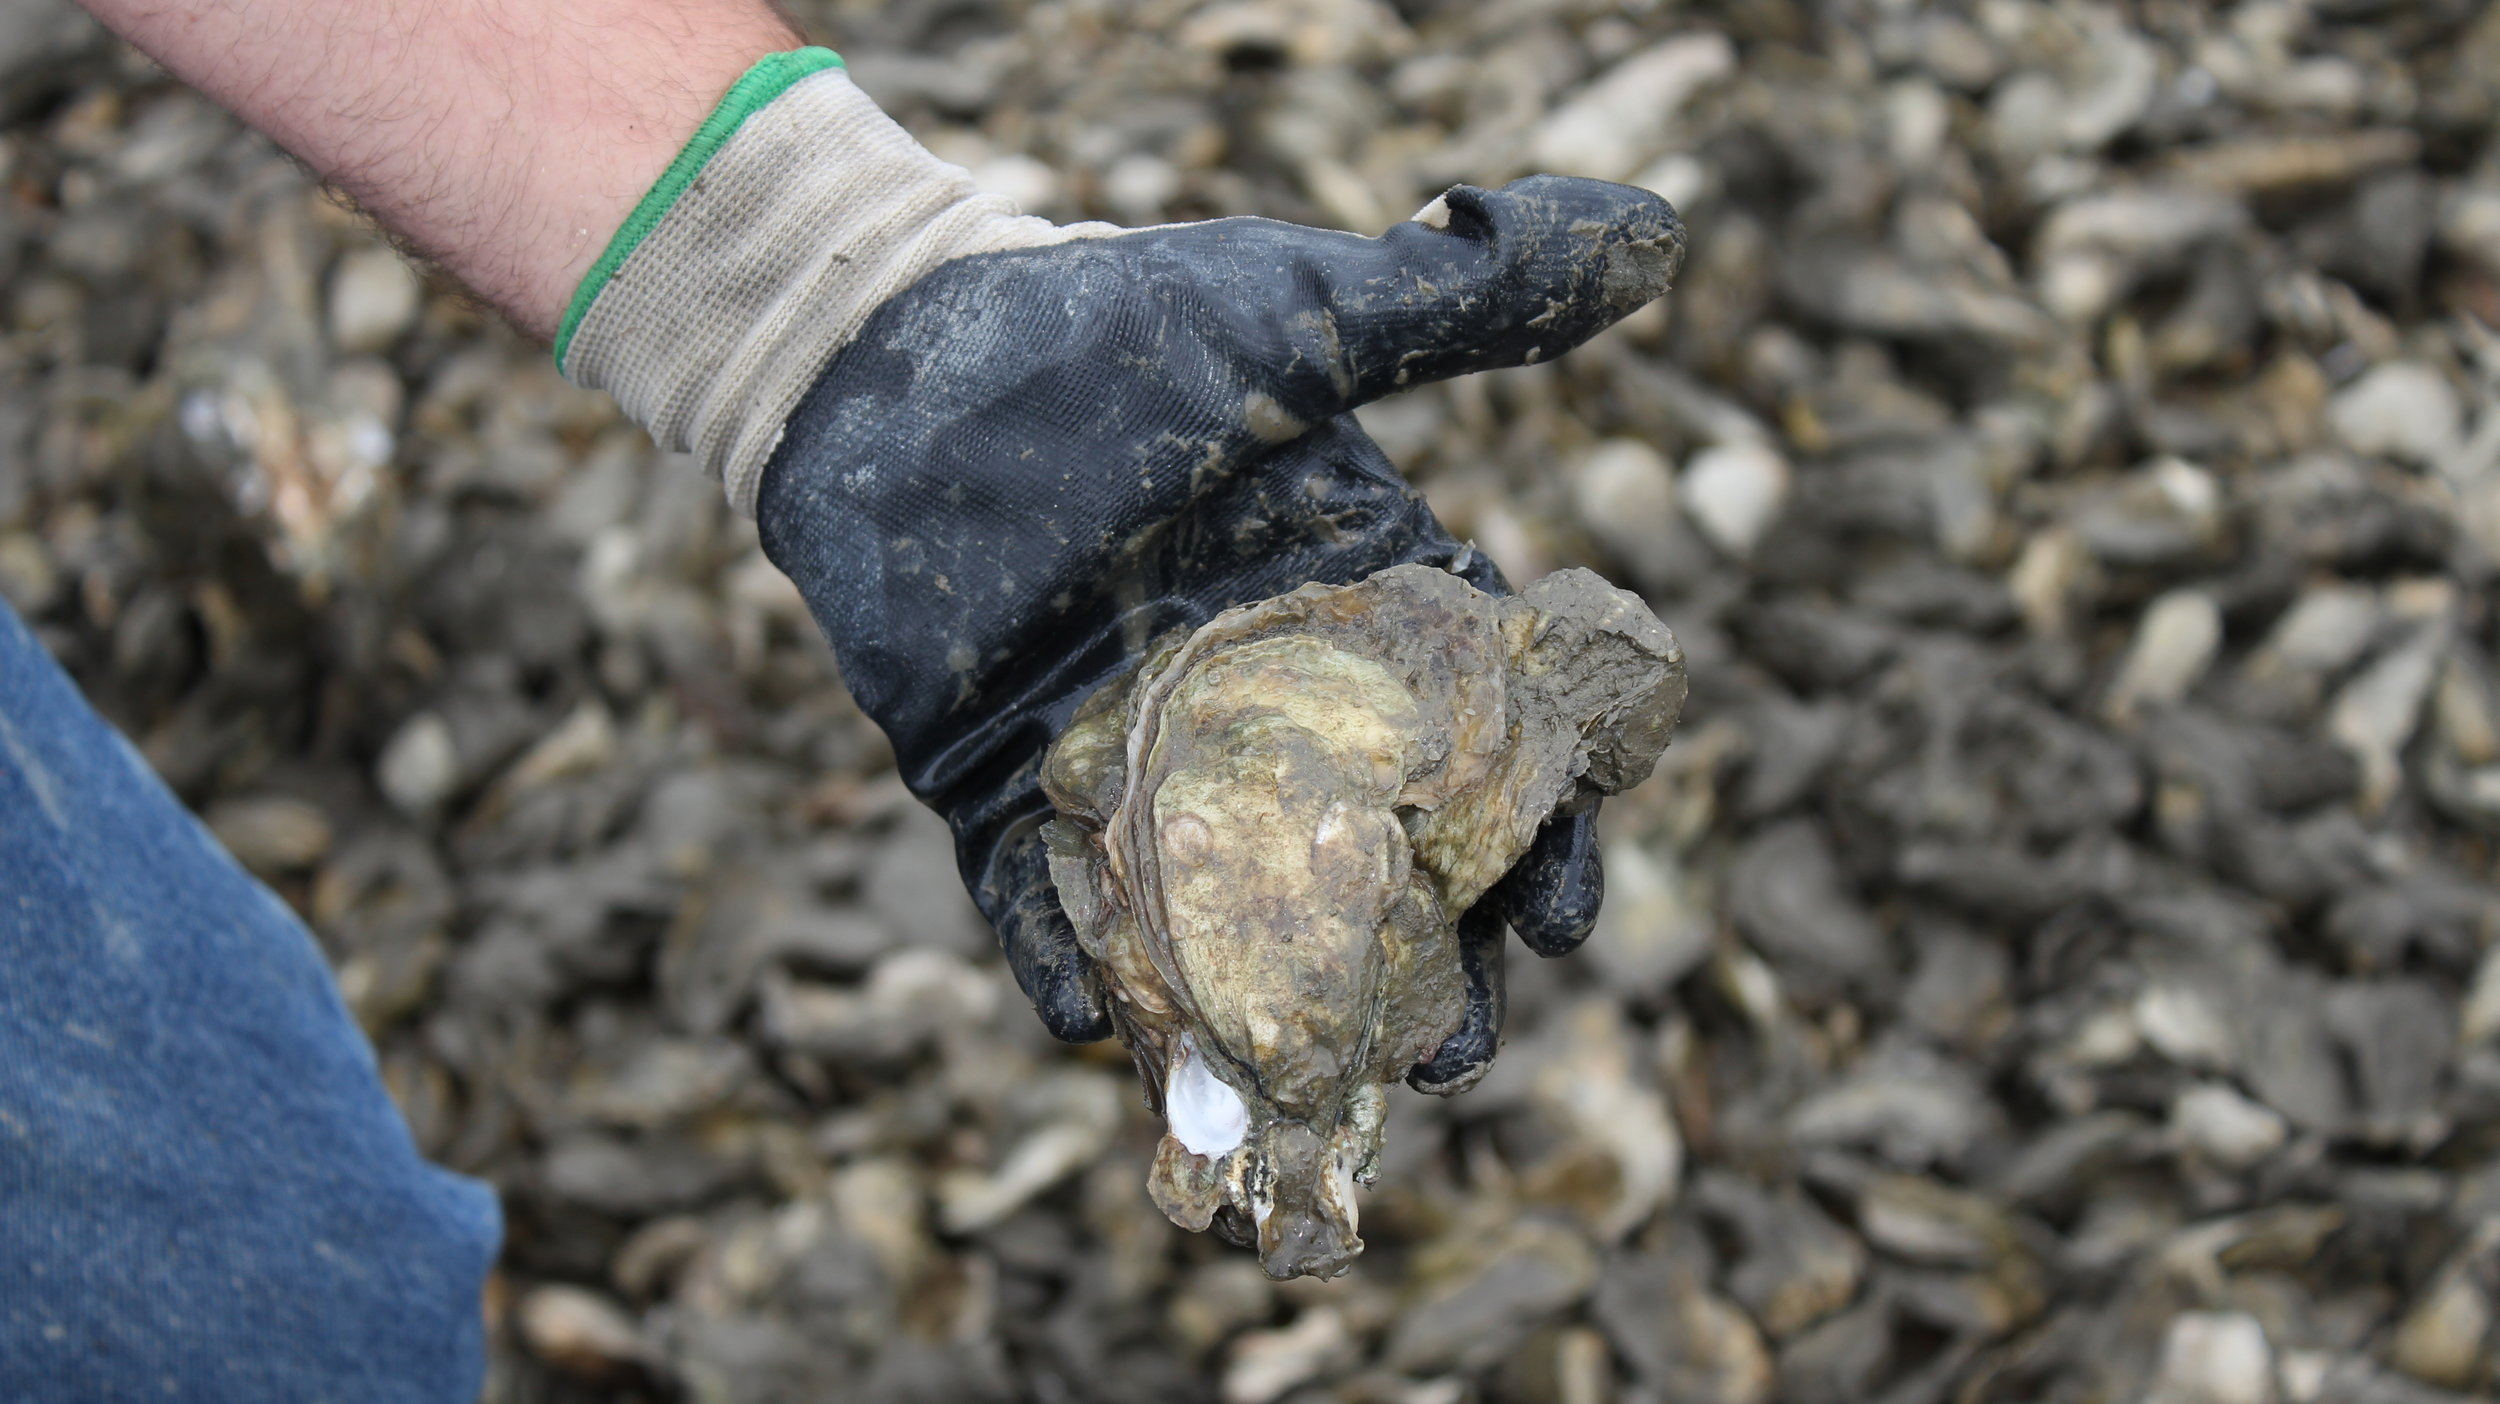 Veteran oyster harvesters and first-timers alike will benefit from the new shellfish ground web app. (Photo: E. Weeks/SCDNR)